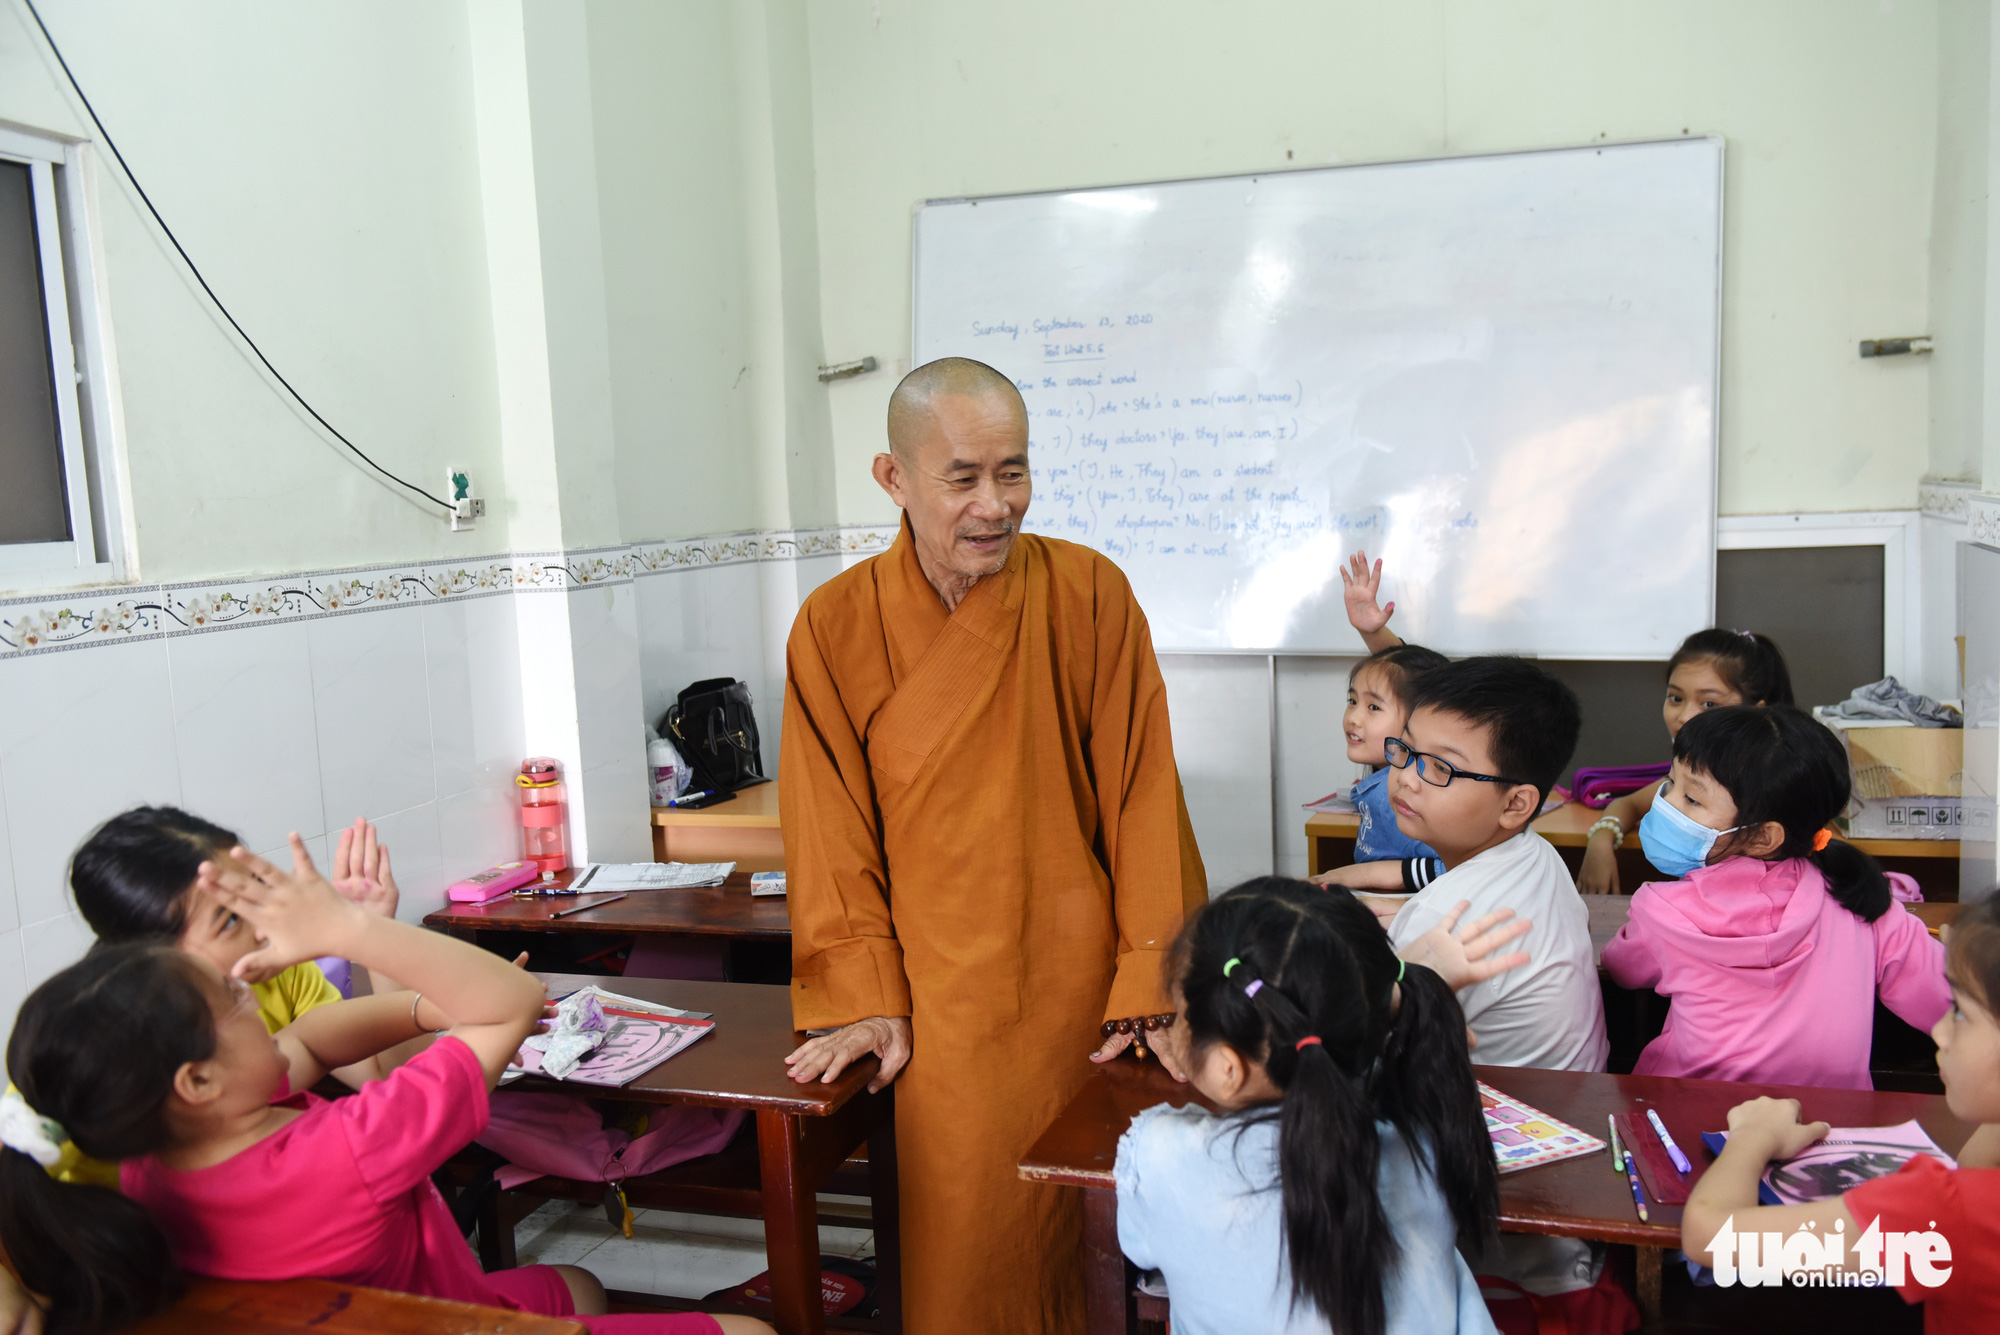 Pagoda runs gratis language classes in Ho Chi Minh City for over a decade